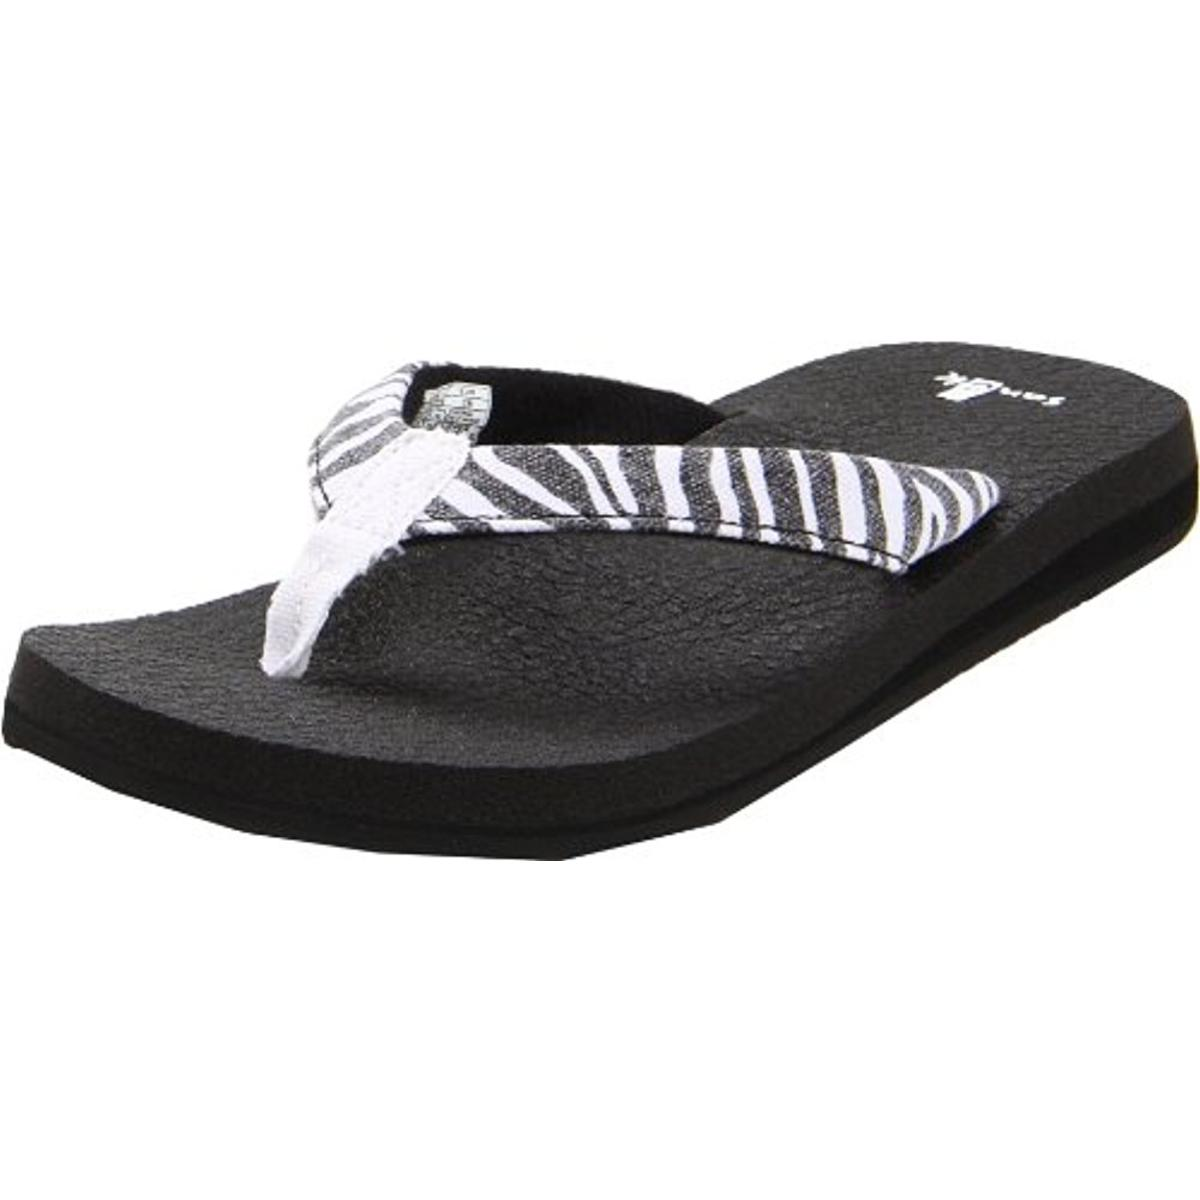 Sanuk Yoga Shoes Amazon: Sanuk 8696 Womens Yoga Wildlife Canvas Sandals Flip-Flops